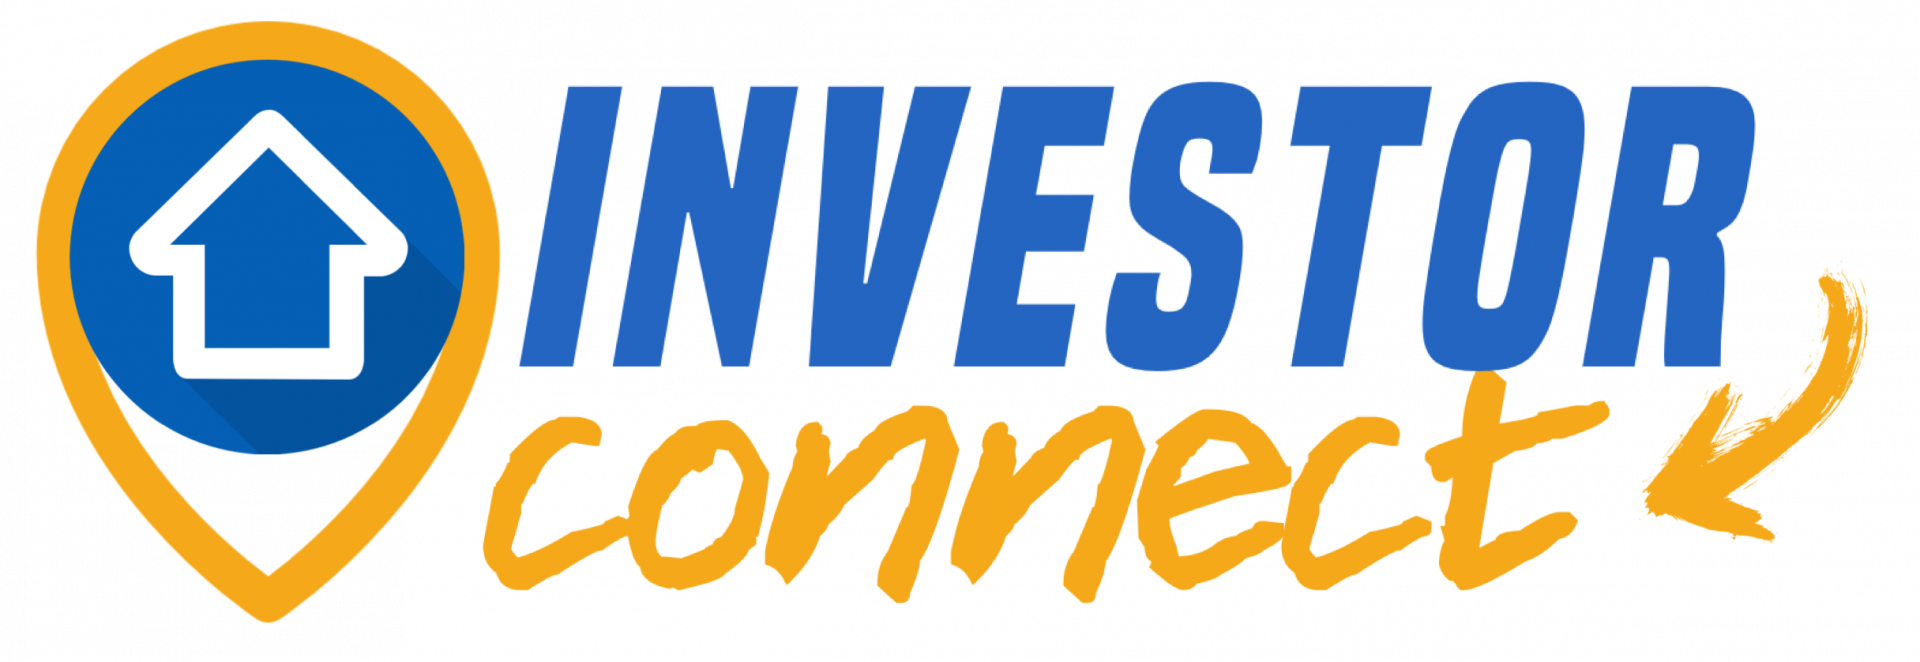 INVESTOR DEAL SOURCE logo